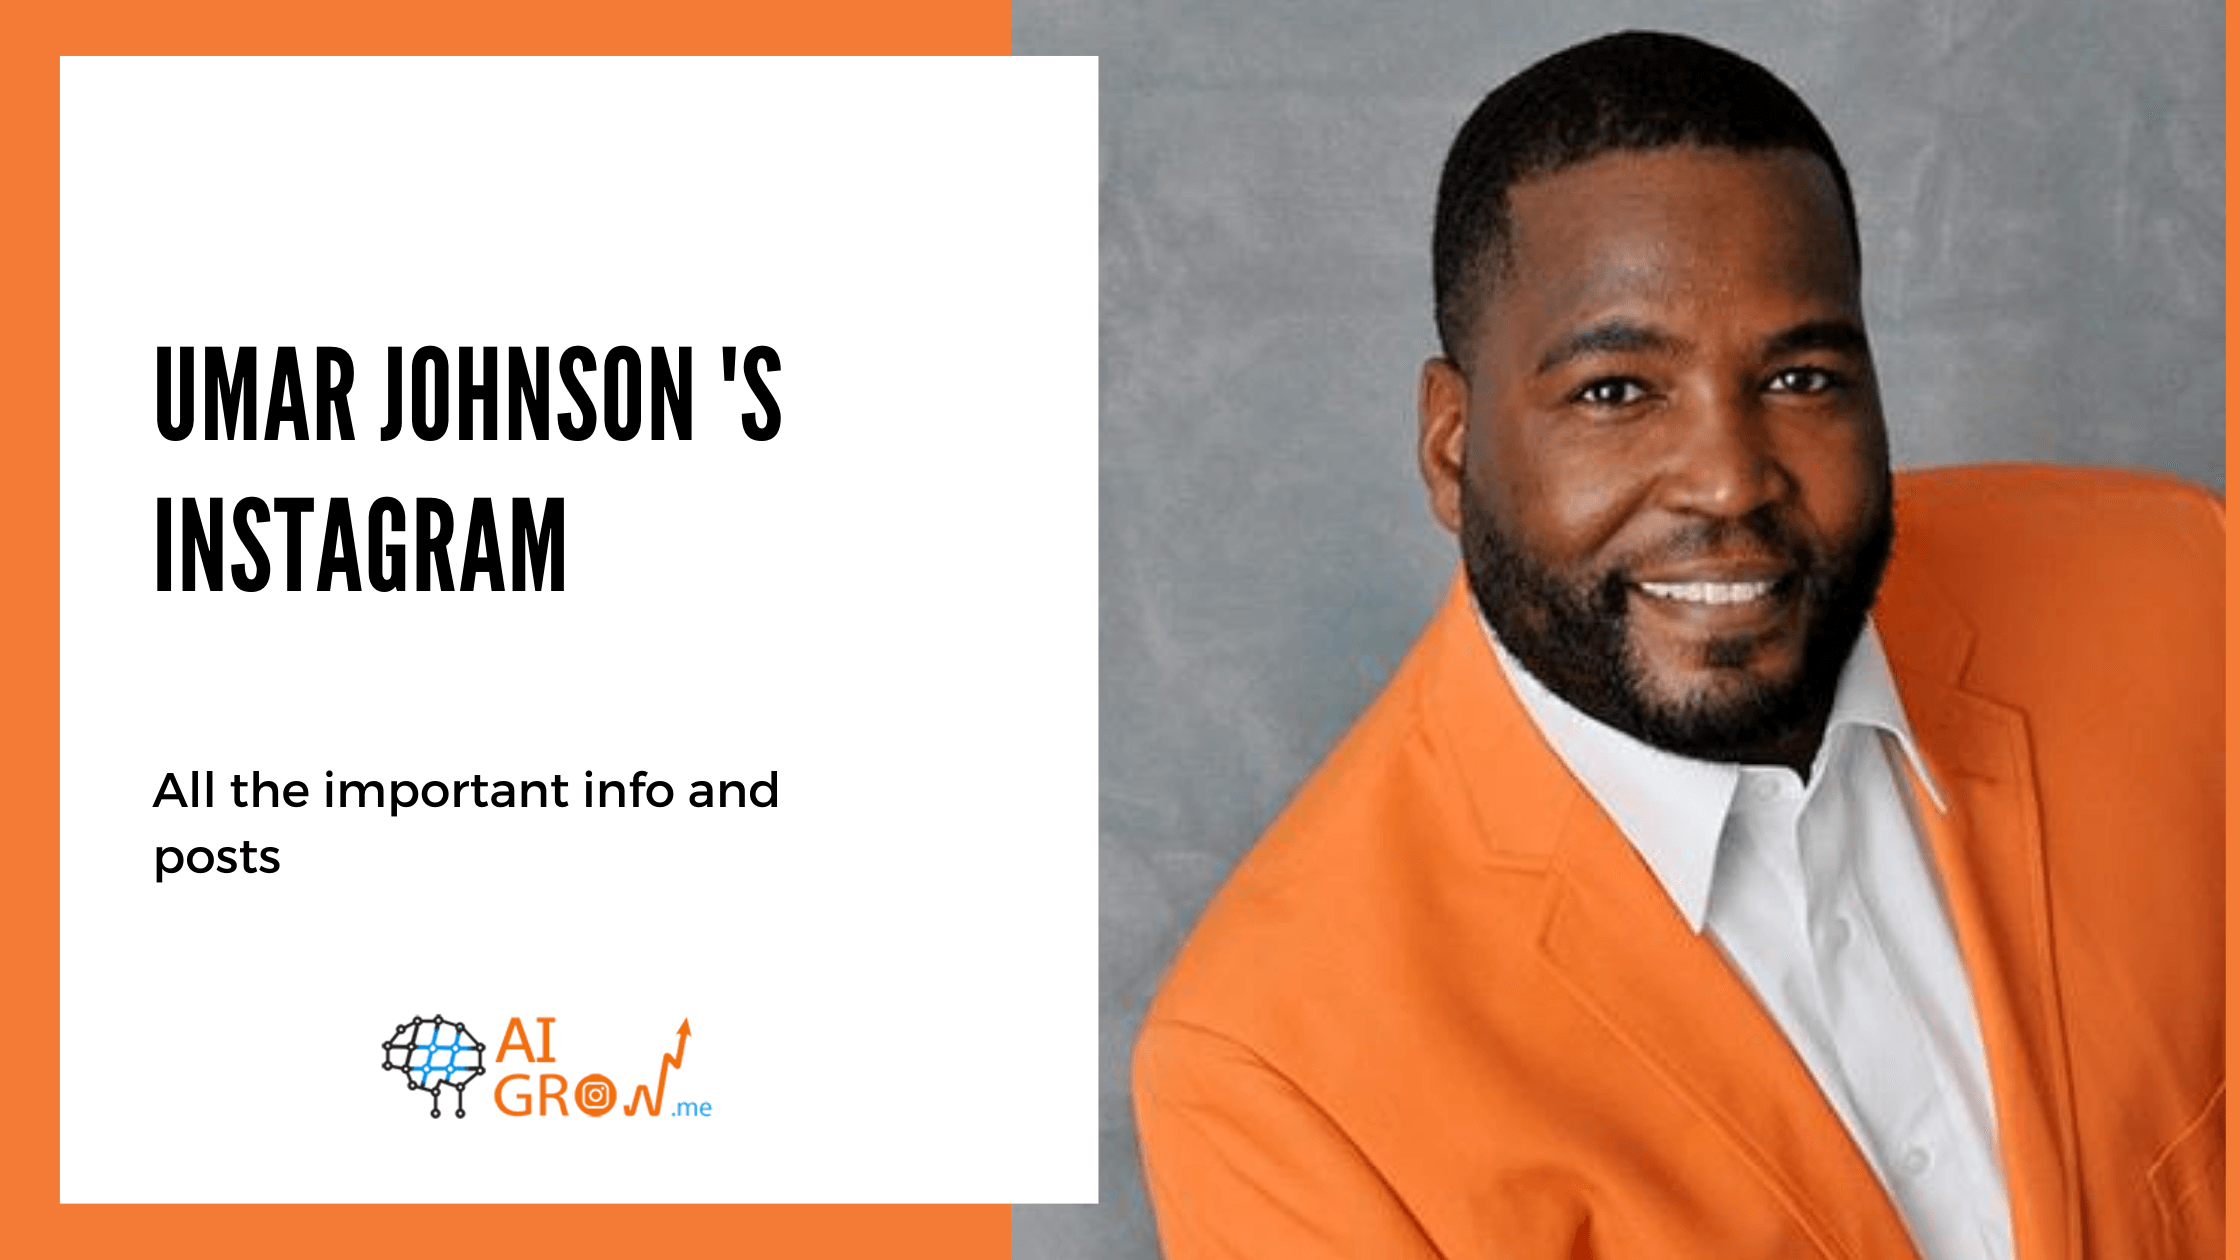 Umar Johnson's Instagram, All the important info and posts